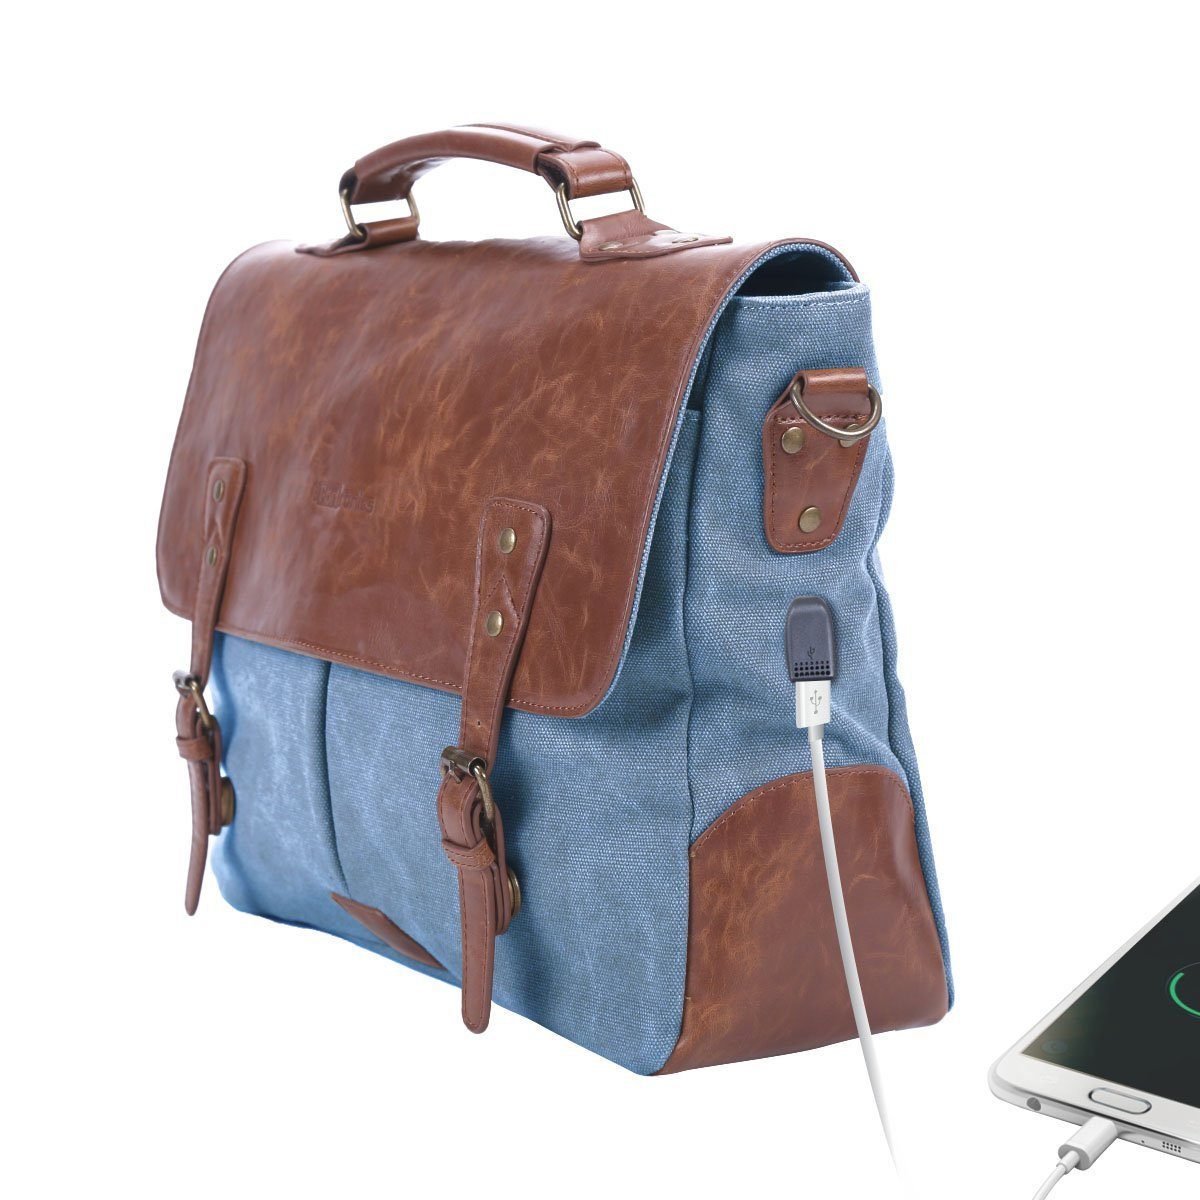 Portronics POR-822 Unisex Laptop Bag with an in-Built USB 2.0 Charging Port